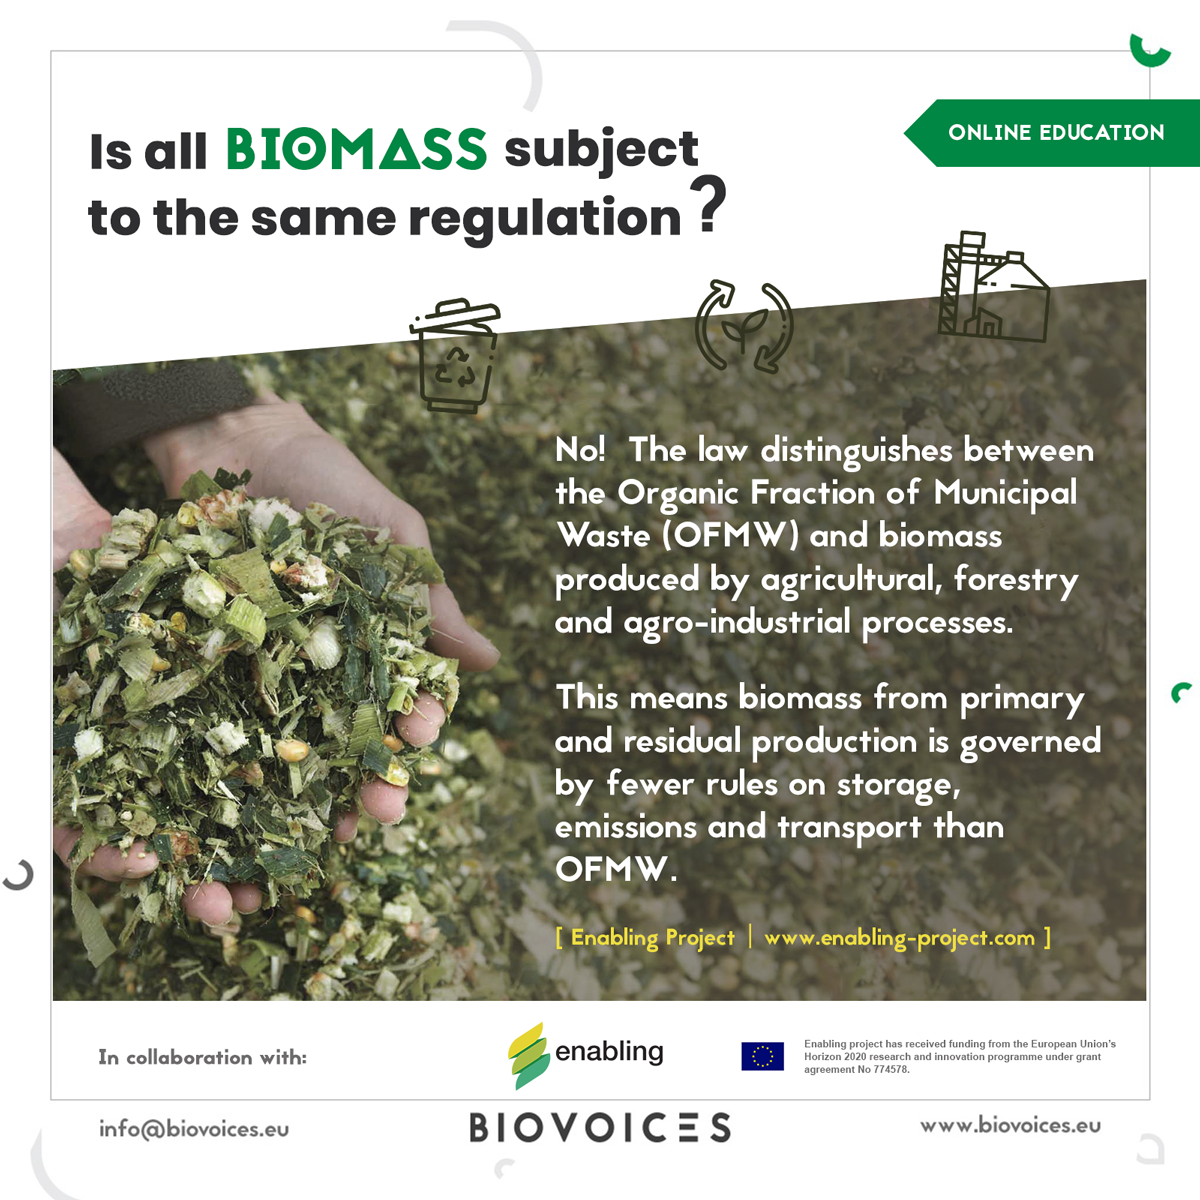 Is all biomass subject to the same regulation?